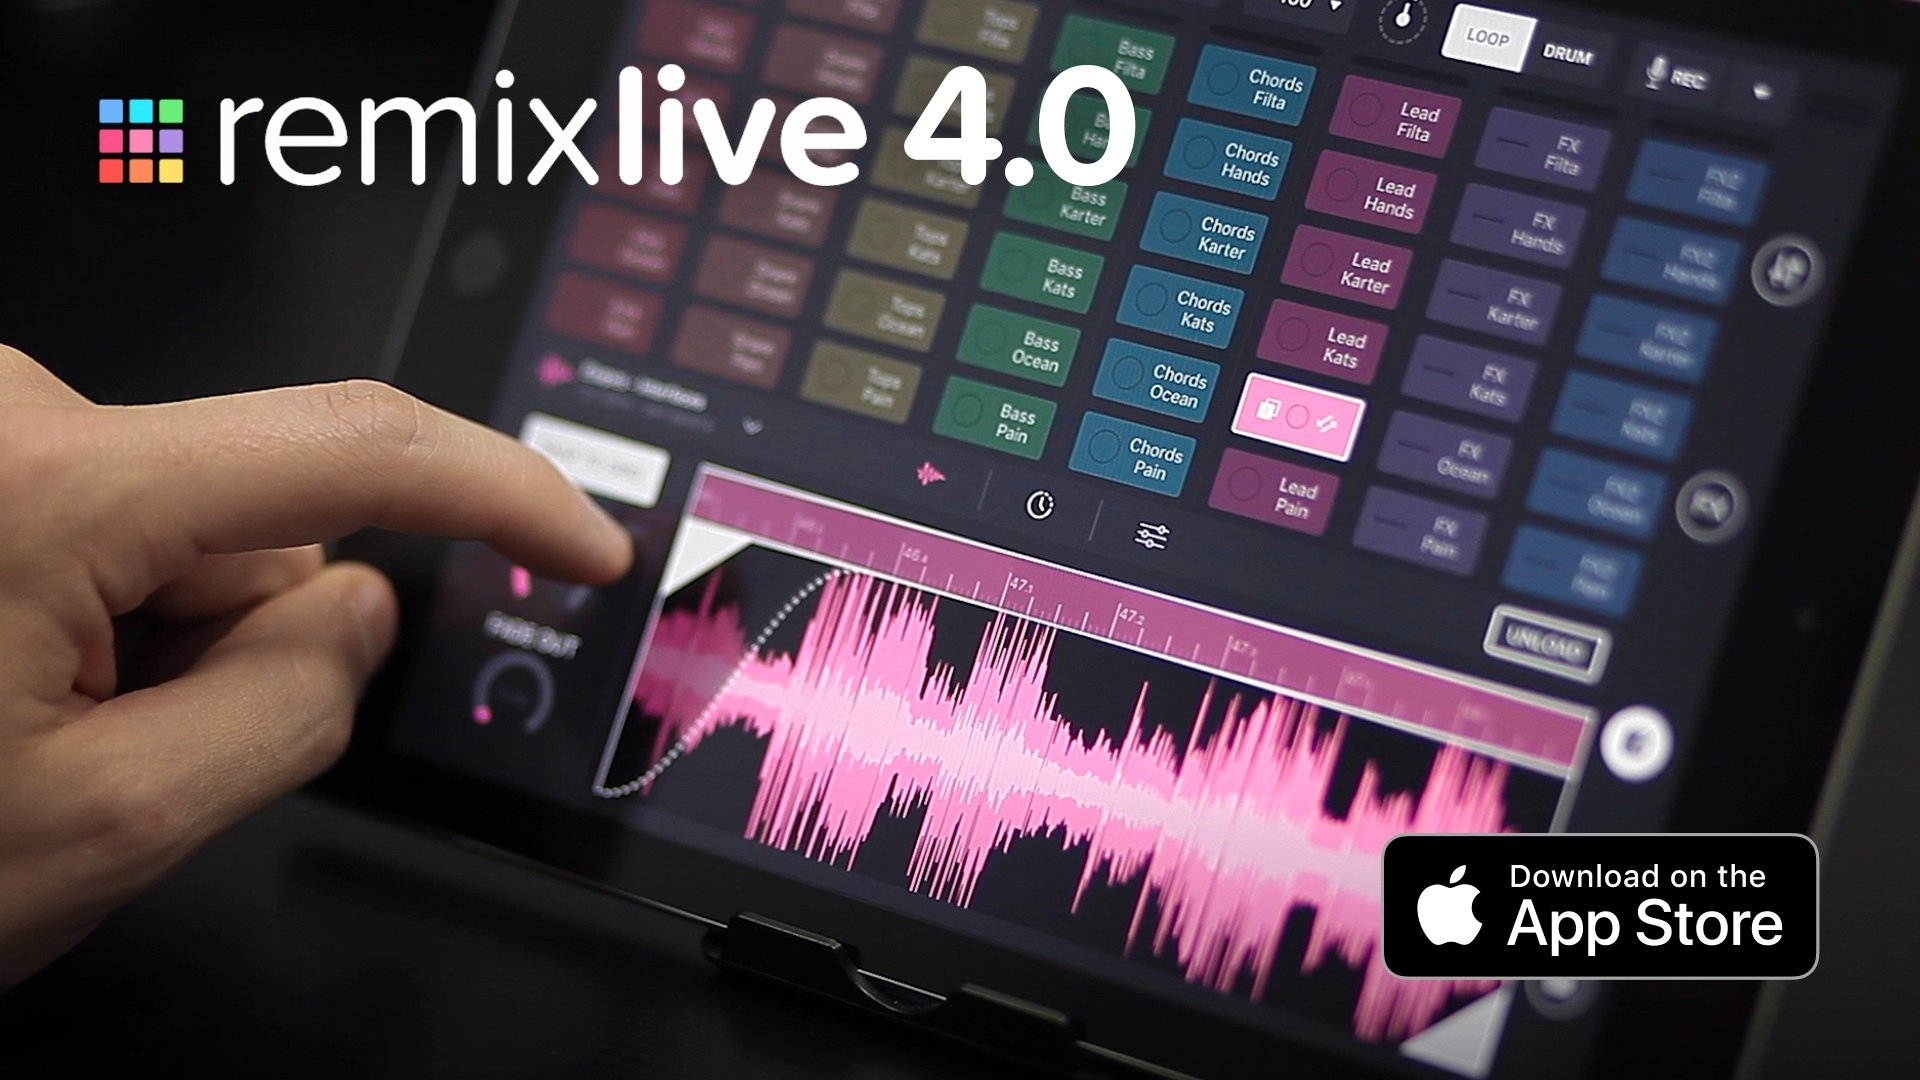 Mixvibes Remixlive 4 — play samples and edit them too 9